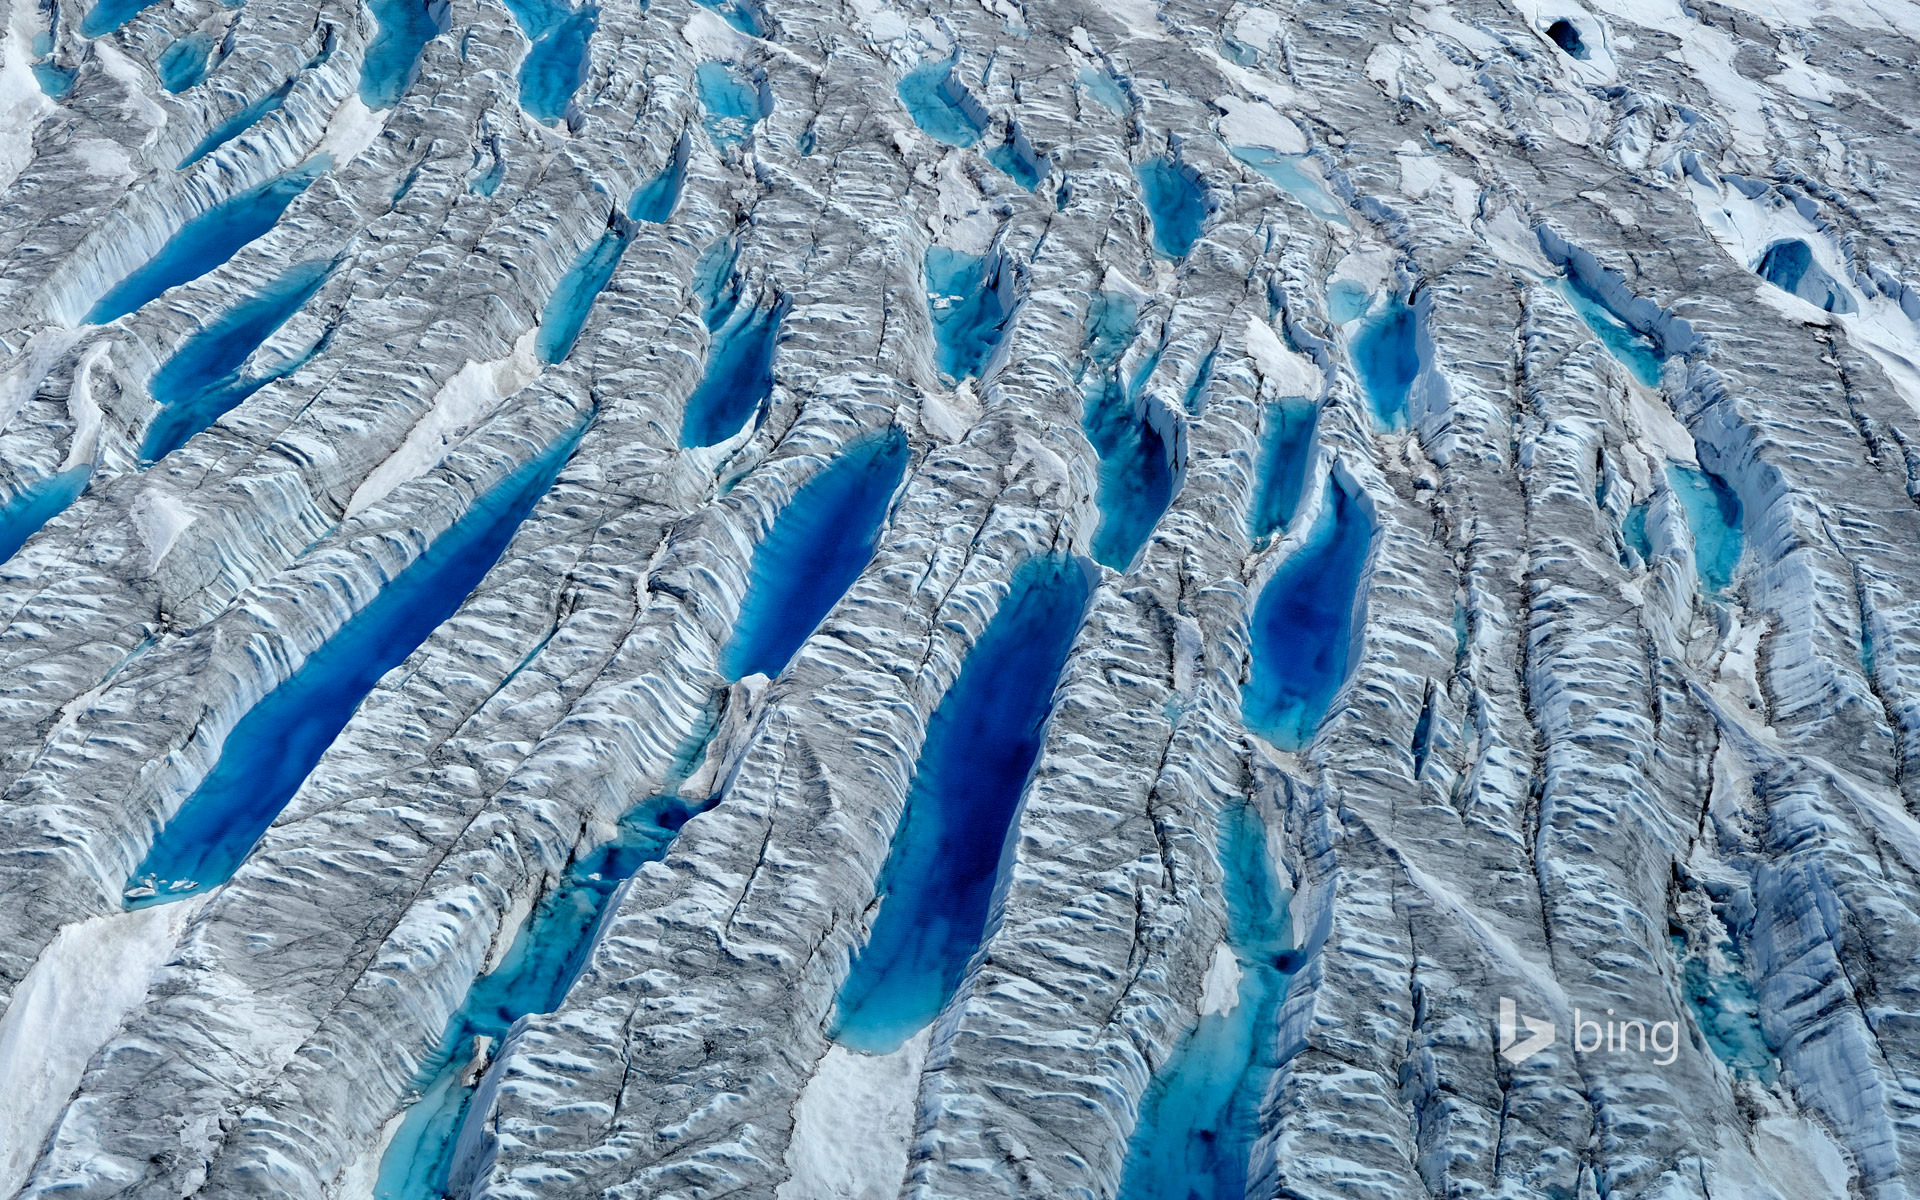 Meltwater on the Greenland ice sheet, Greenland